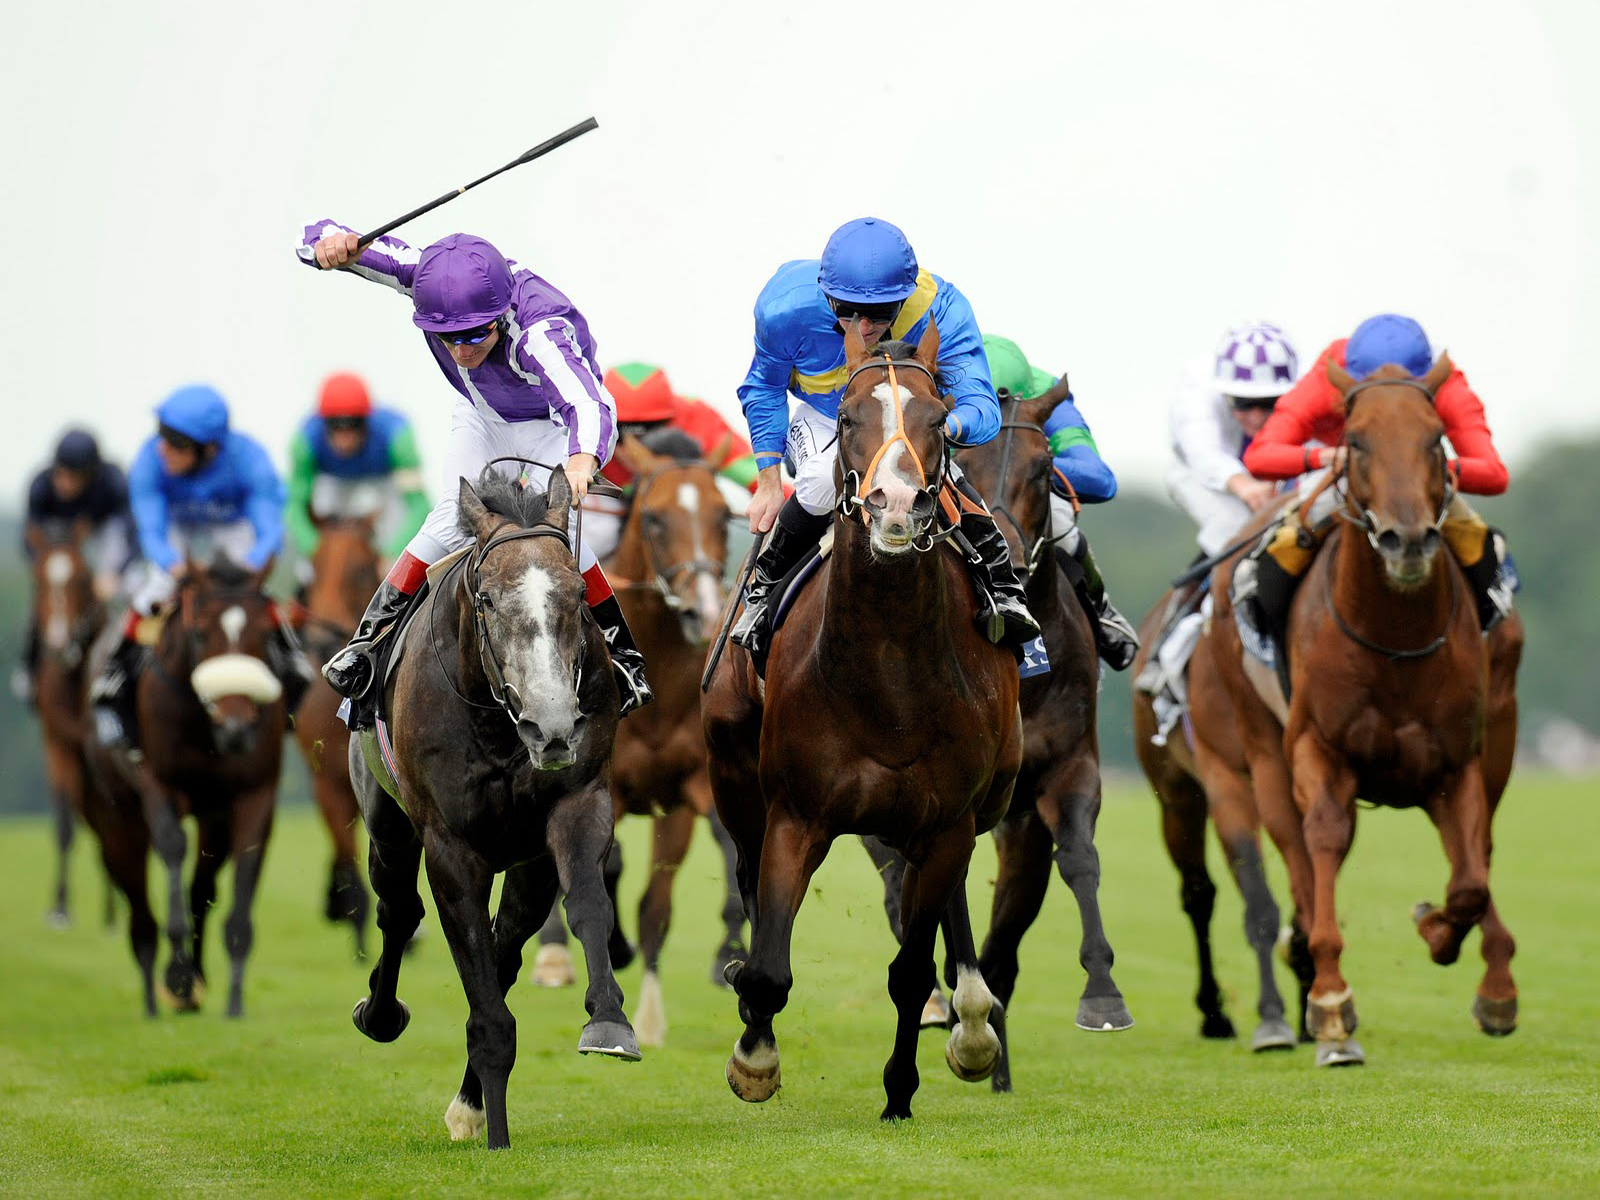 Horse Racing Form Spreadsheet In Free Sports Betting Spreadsheet For Horse Racing